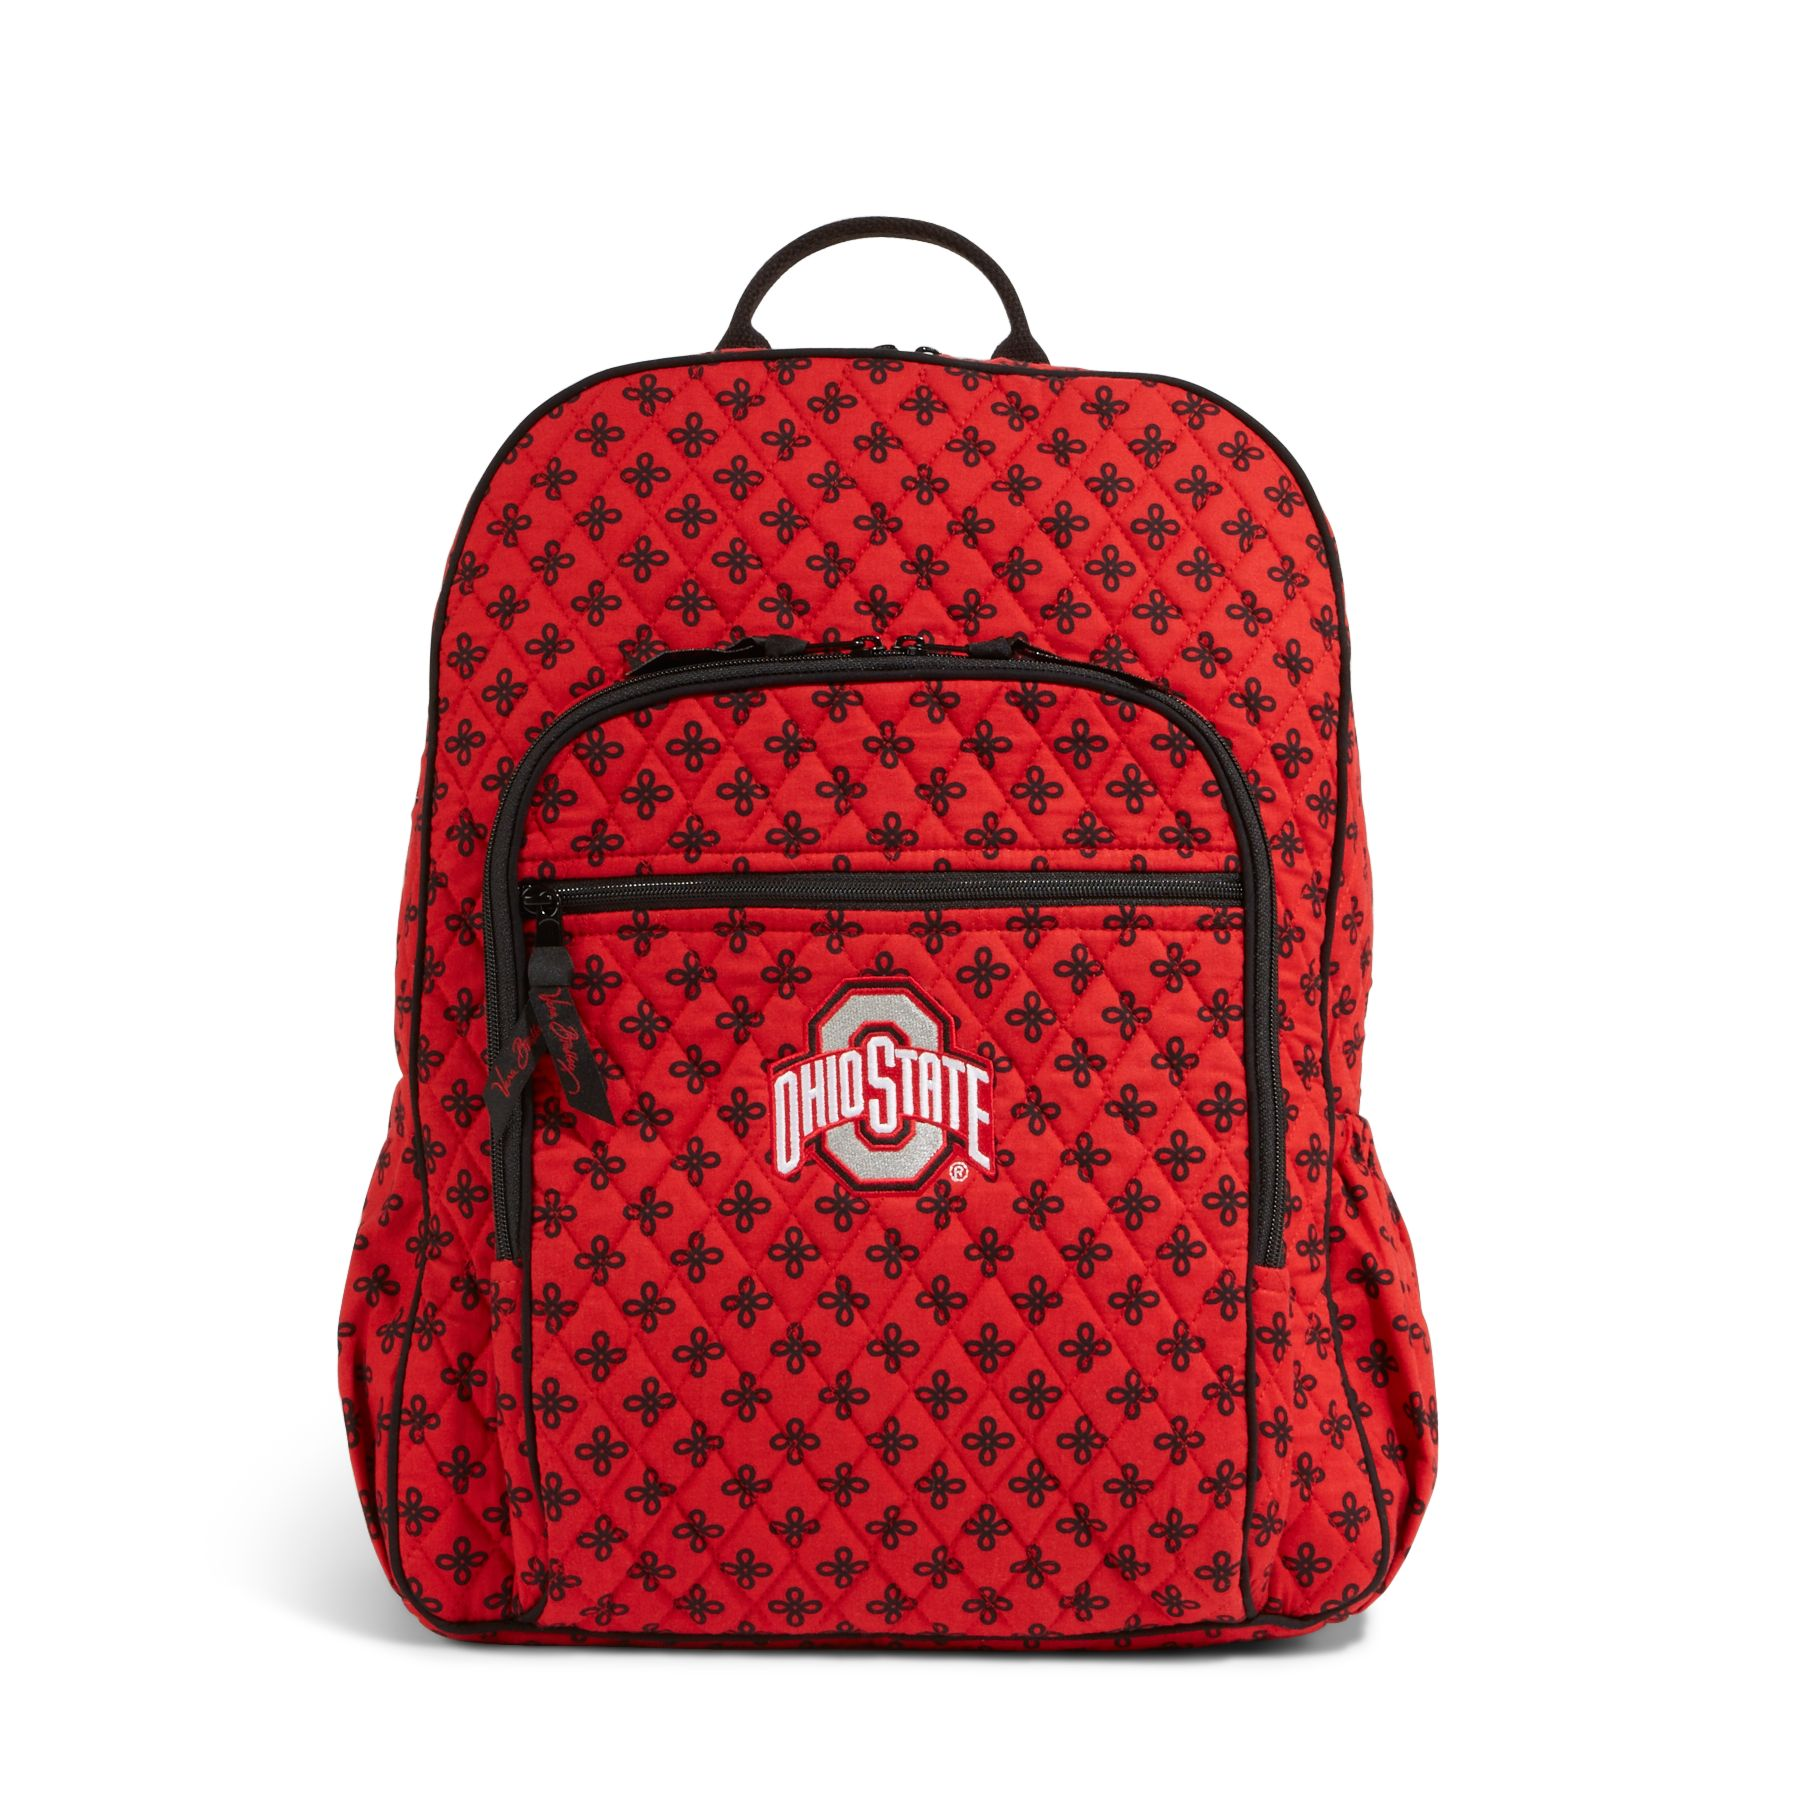 Vera Bradley Campus Backpack in Scarlet/Black Mini Concerto with Ohio St